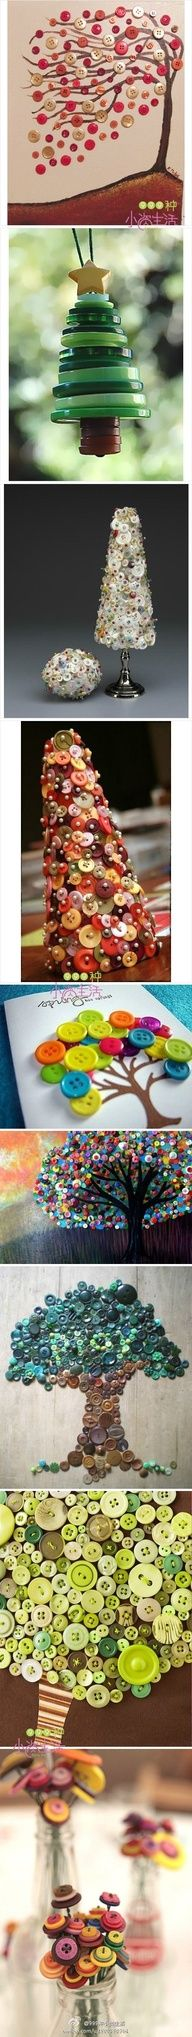 Button crafts..great for a rainy day project:)